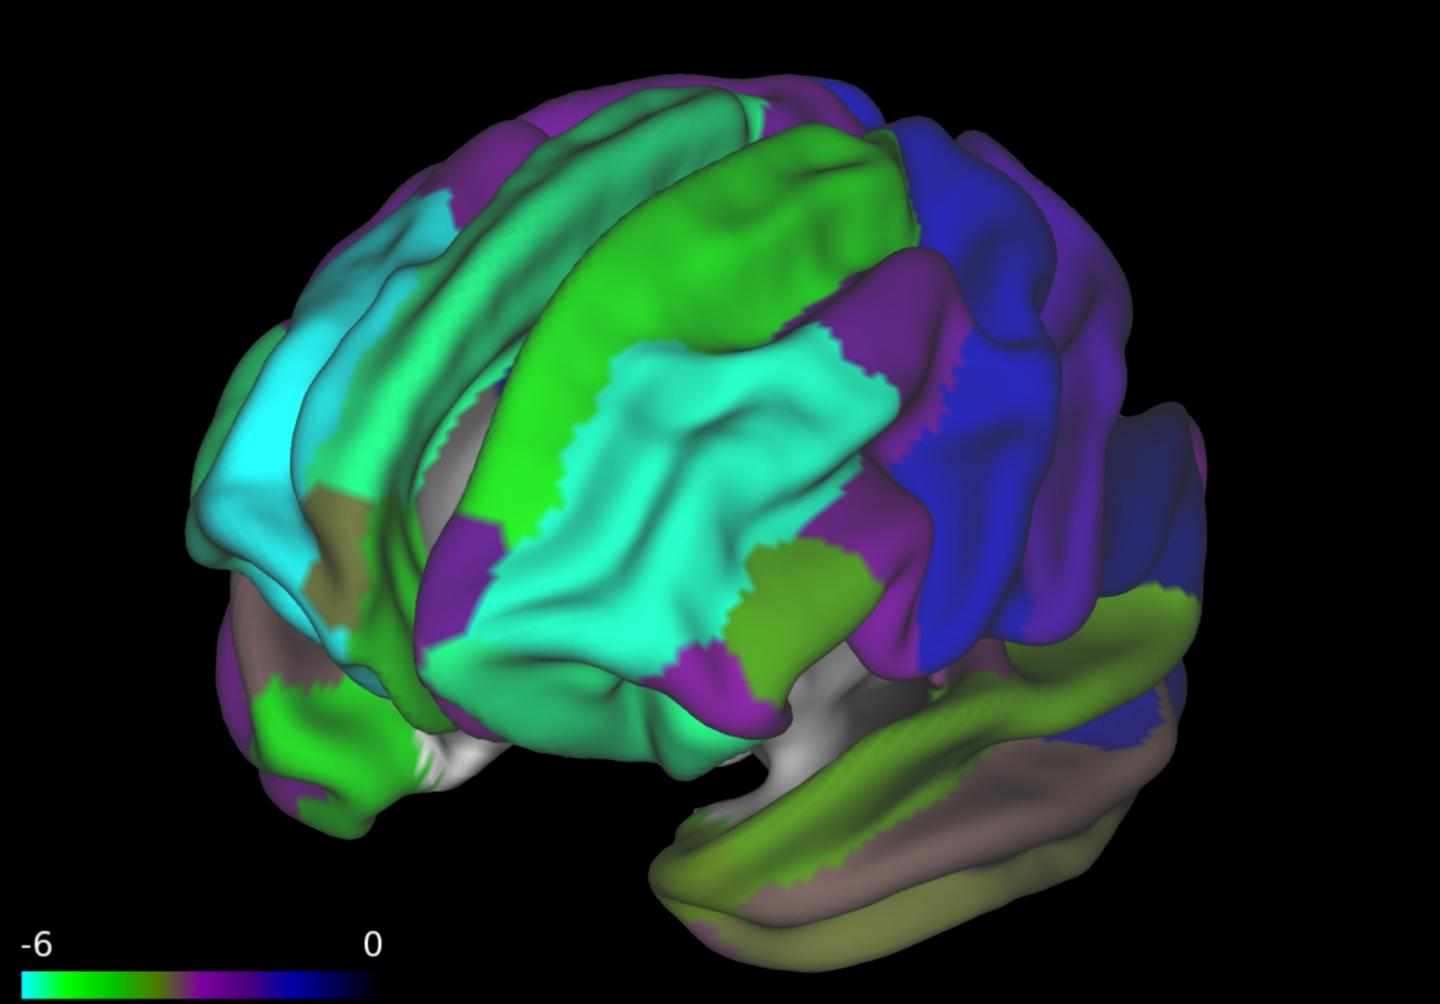 A Bran Scan from a New Study Shows a Thinner Prefrontal Cortex in Children with Higher BMI